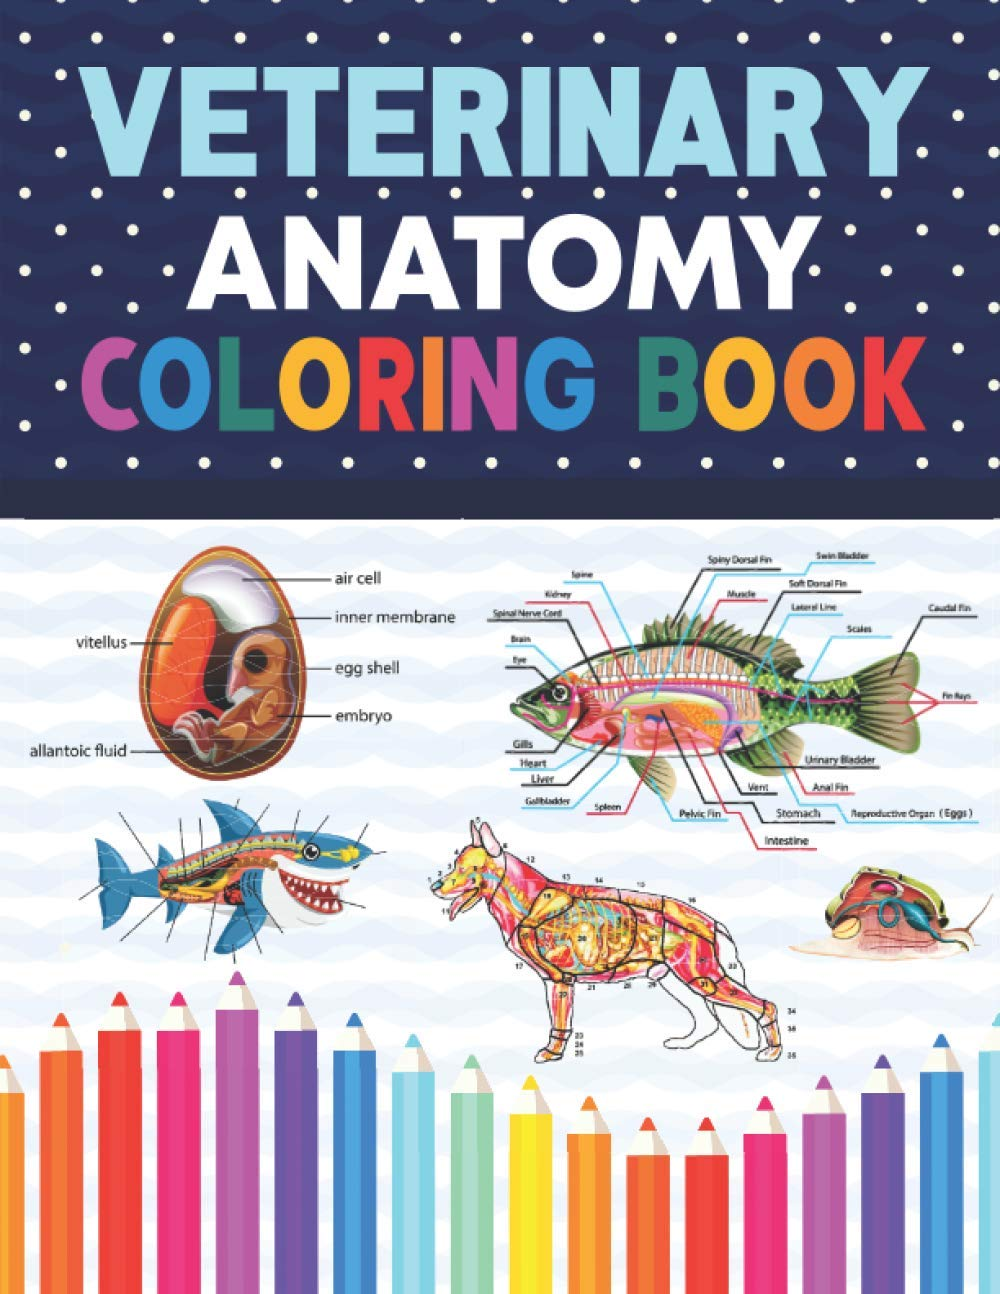 Amazon Com Veterinary Anatomy Coloring Book Animal Anatomy And Veterinary Physiology Coloring Book Dog Cat Horse Frog Bird Anatomy Coloring Book Vet Tech Veterinary Zoology Anatomy Coloring Book 9798570596542 Publication Donnaniczell Books